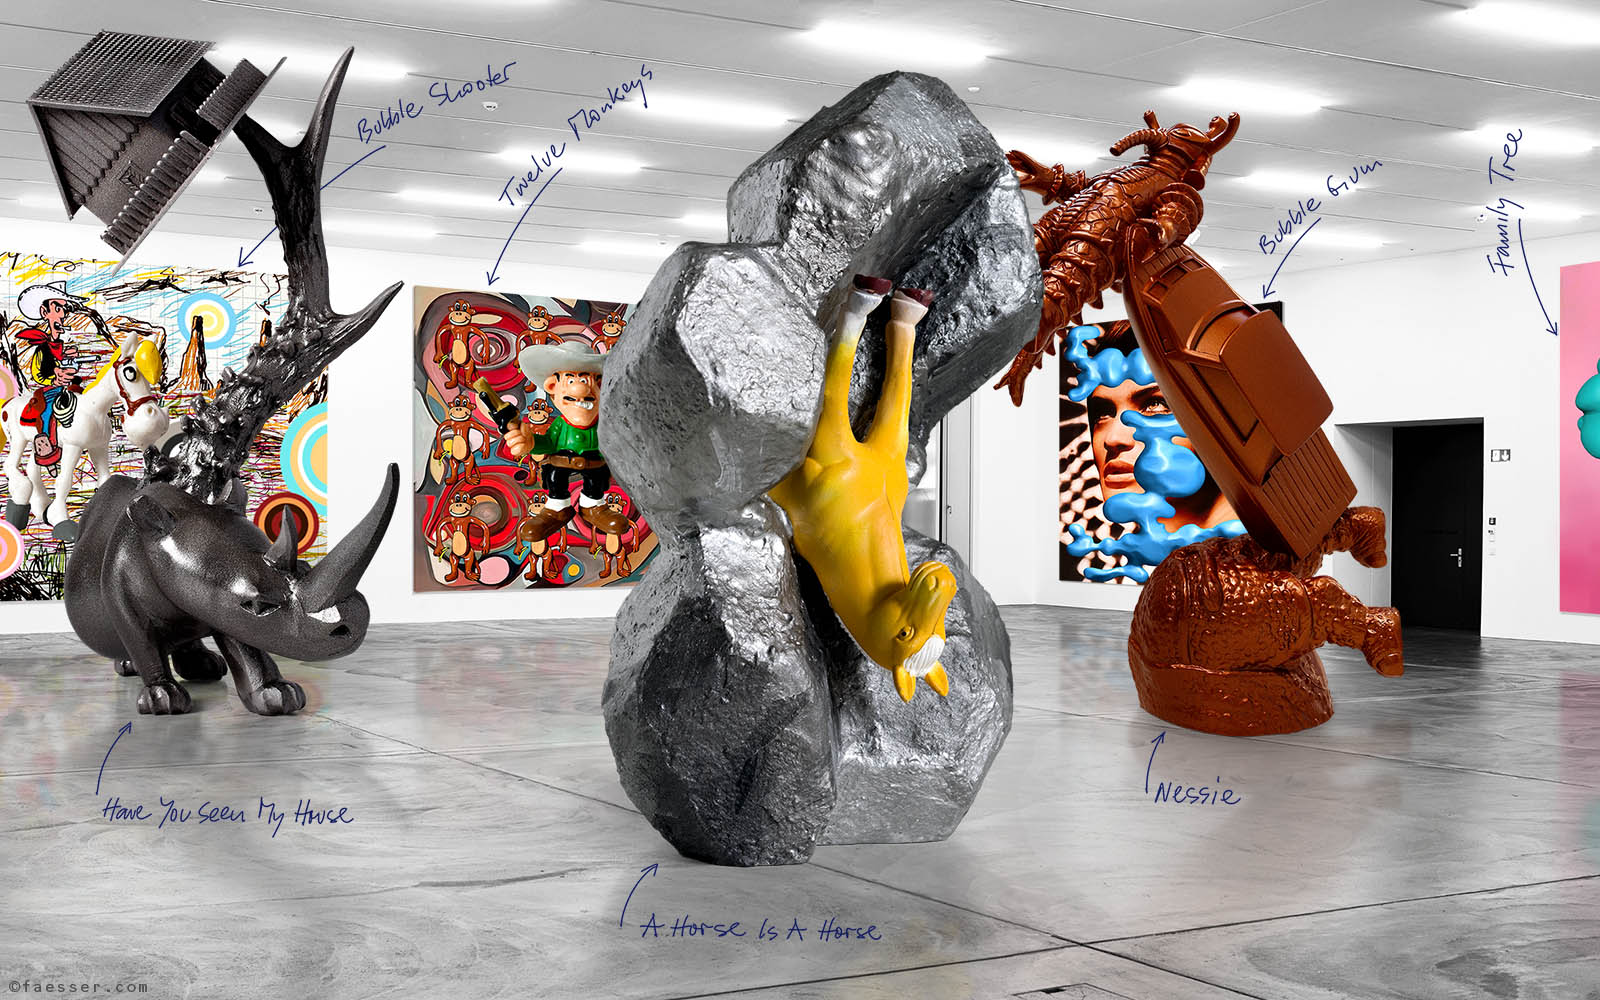 Virtual 3D exhibition at the Kunsthalle Zurich 01; artist Roland Faesser, sculptor and painter 2020